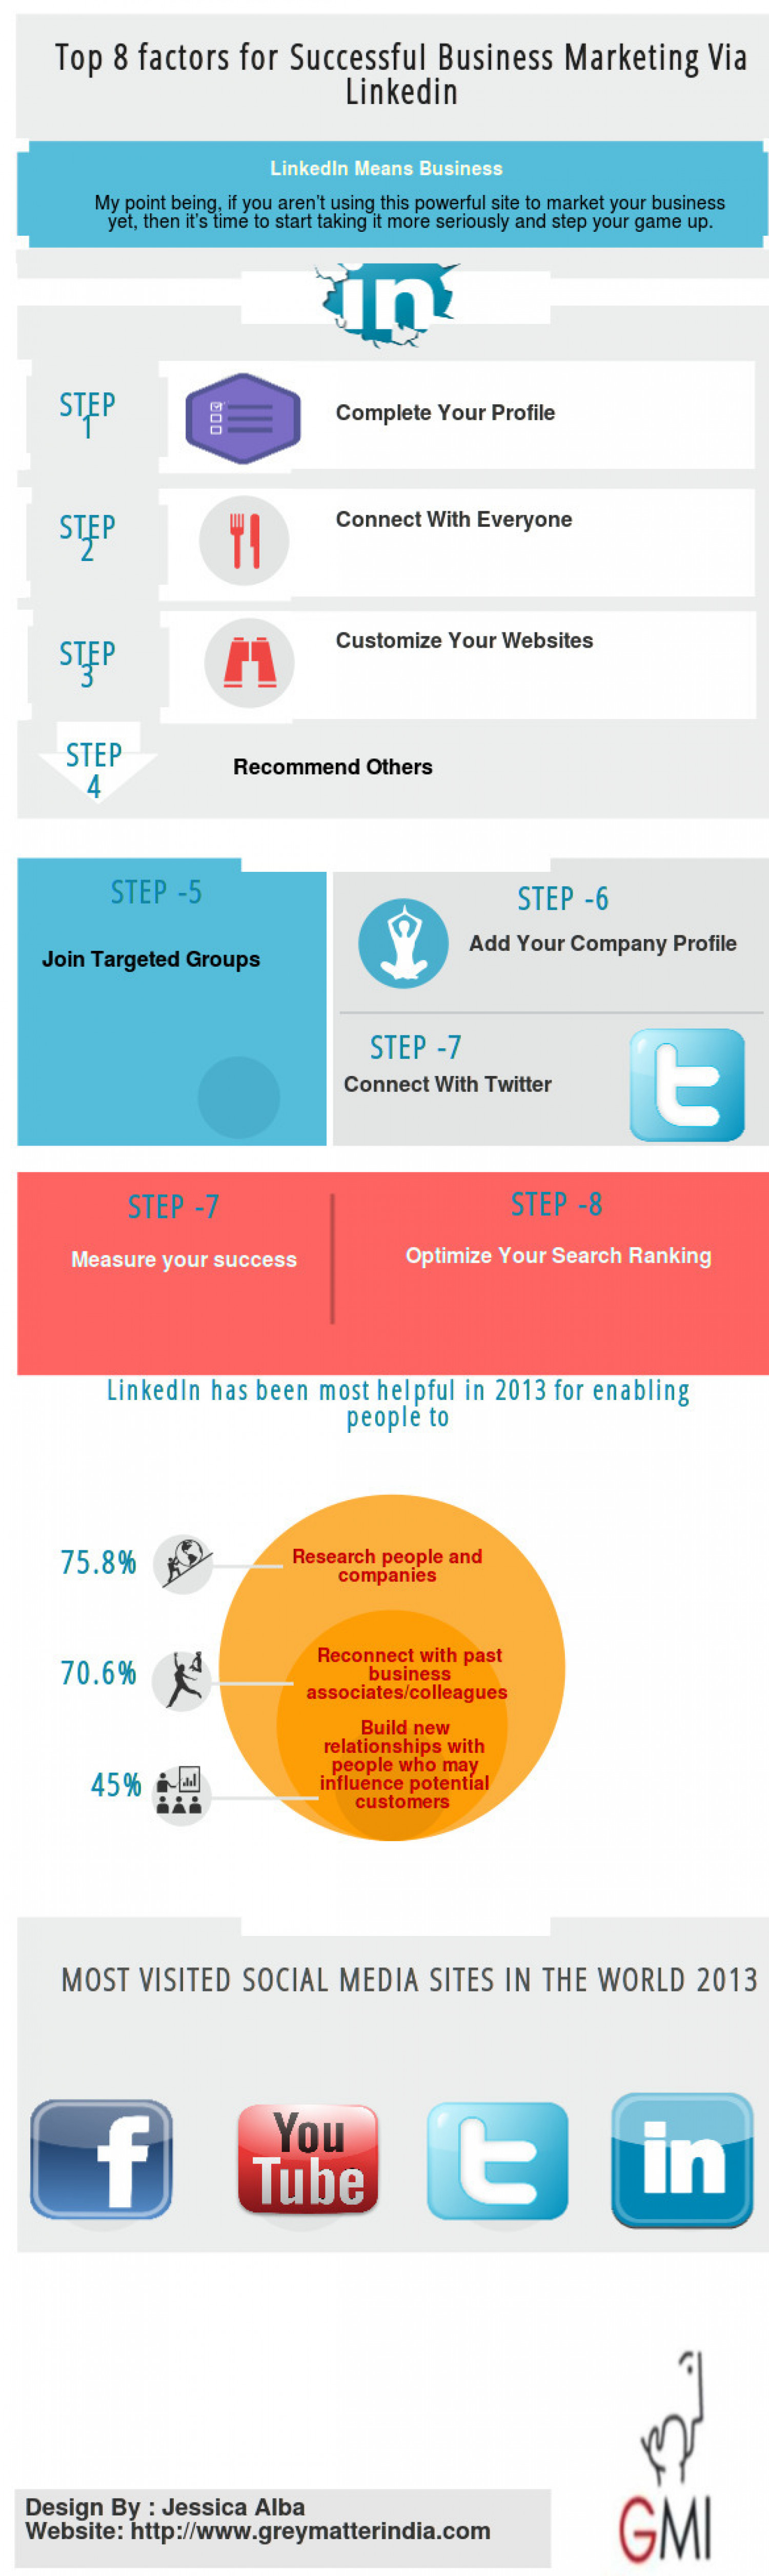 Top 8  factors for Successful Business Marketing Via Linkedin Infographic